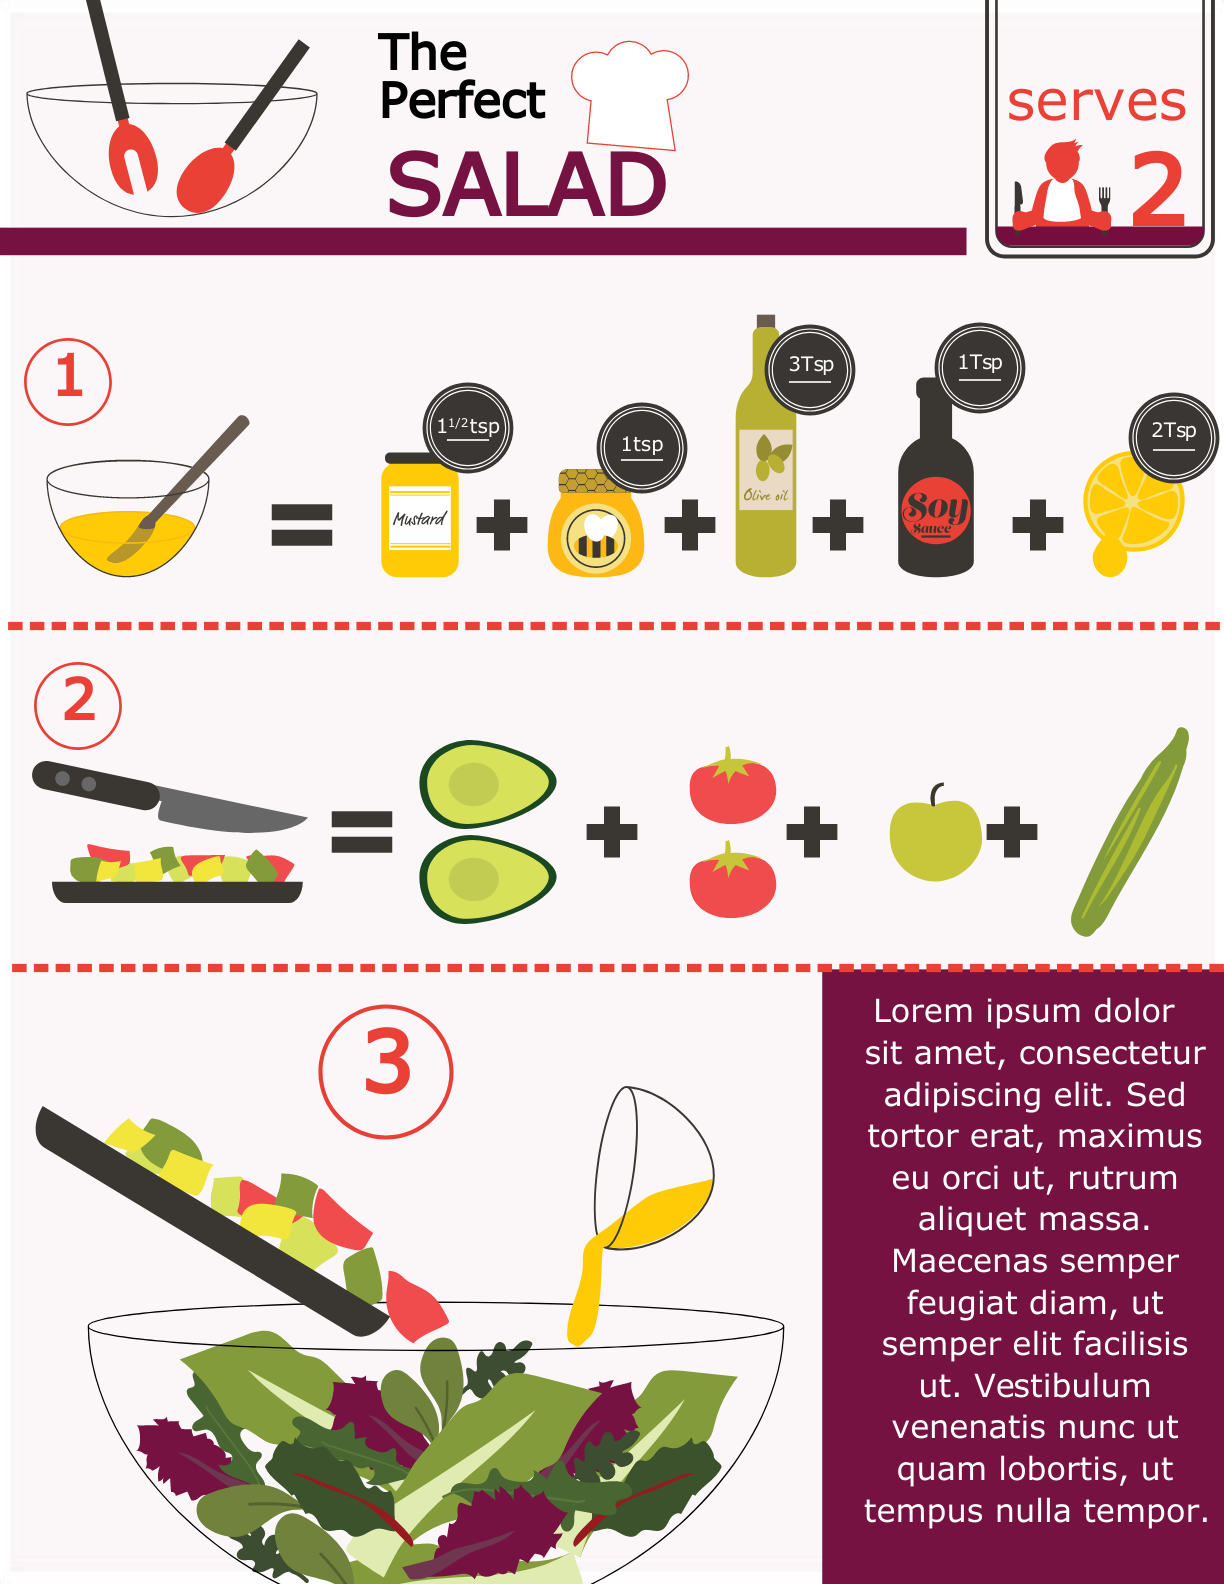 an infographic template for salad recipes.